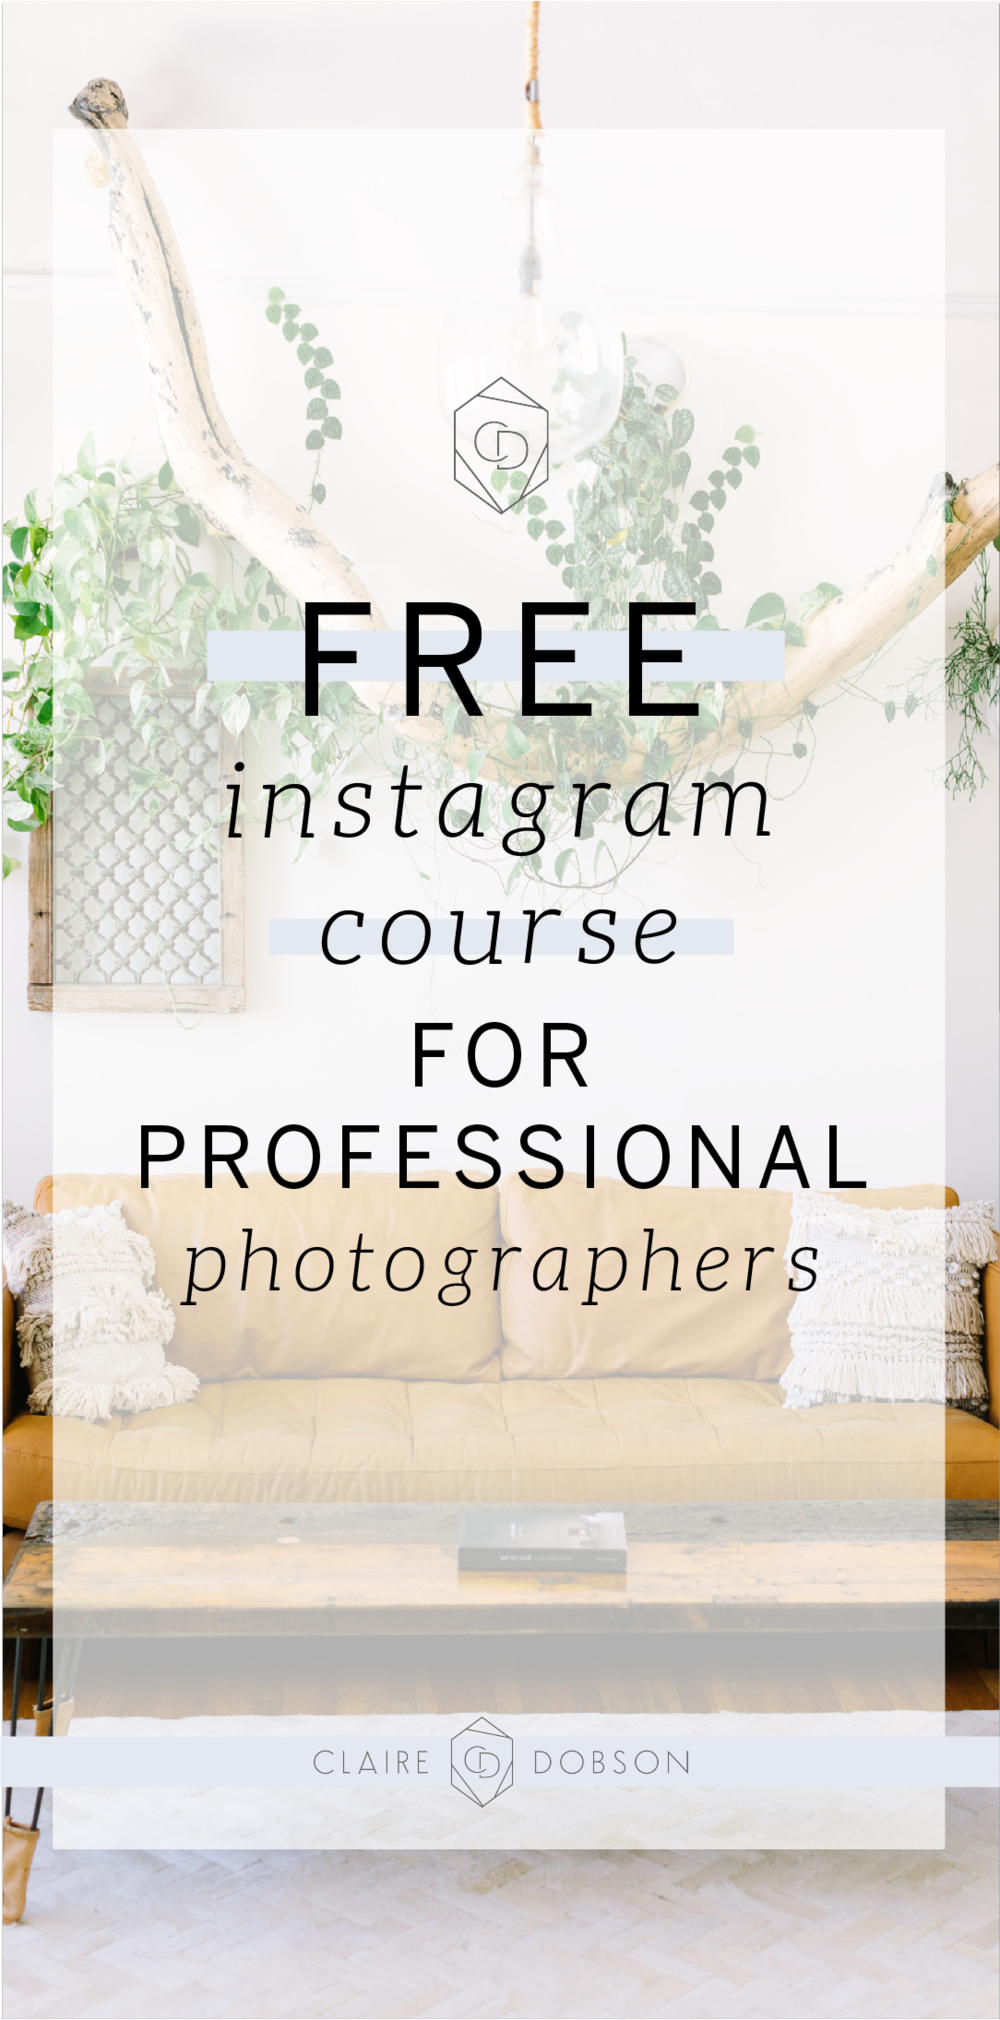 Are you dreaming of more followers and better engagement from your Instagram audience? Are you fed up of uploading images and captions each day, spending hours curating content and selecting hashtags, only to see no likes or comments when other people seem to be getting hundreds, or even thousands on every image? We've put together a free Instagram course for professional creatives just like you, enrol here now. #Instagram #InstagramTips #InstagramForBusiness #InstagramCourse #FreeInstagramCourse